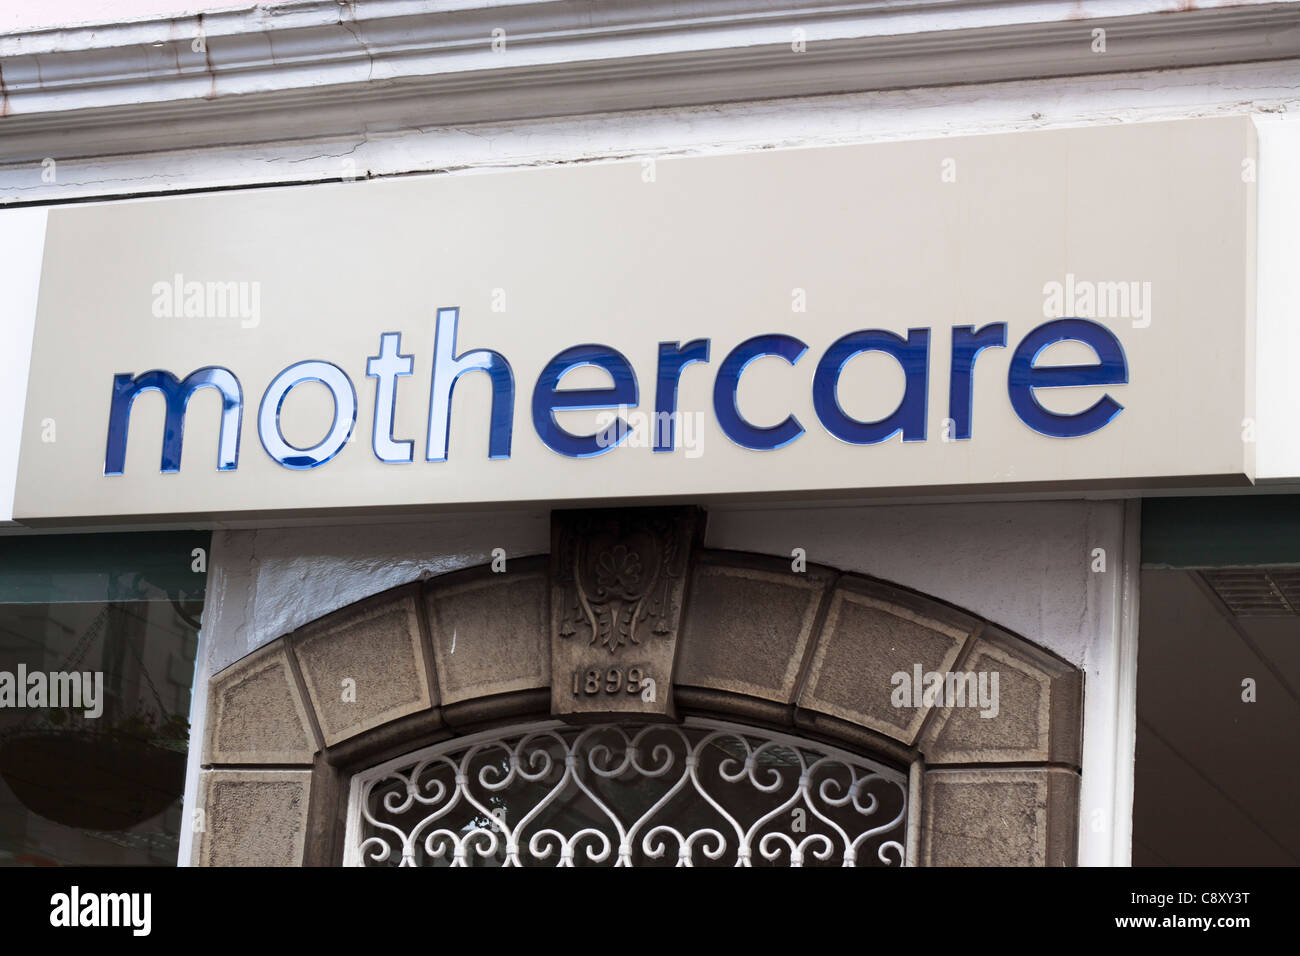 Mothercare sign, Main Street in Gibraltar. - Stock Image